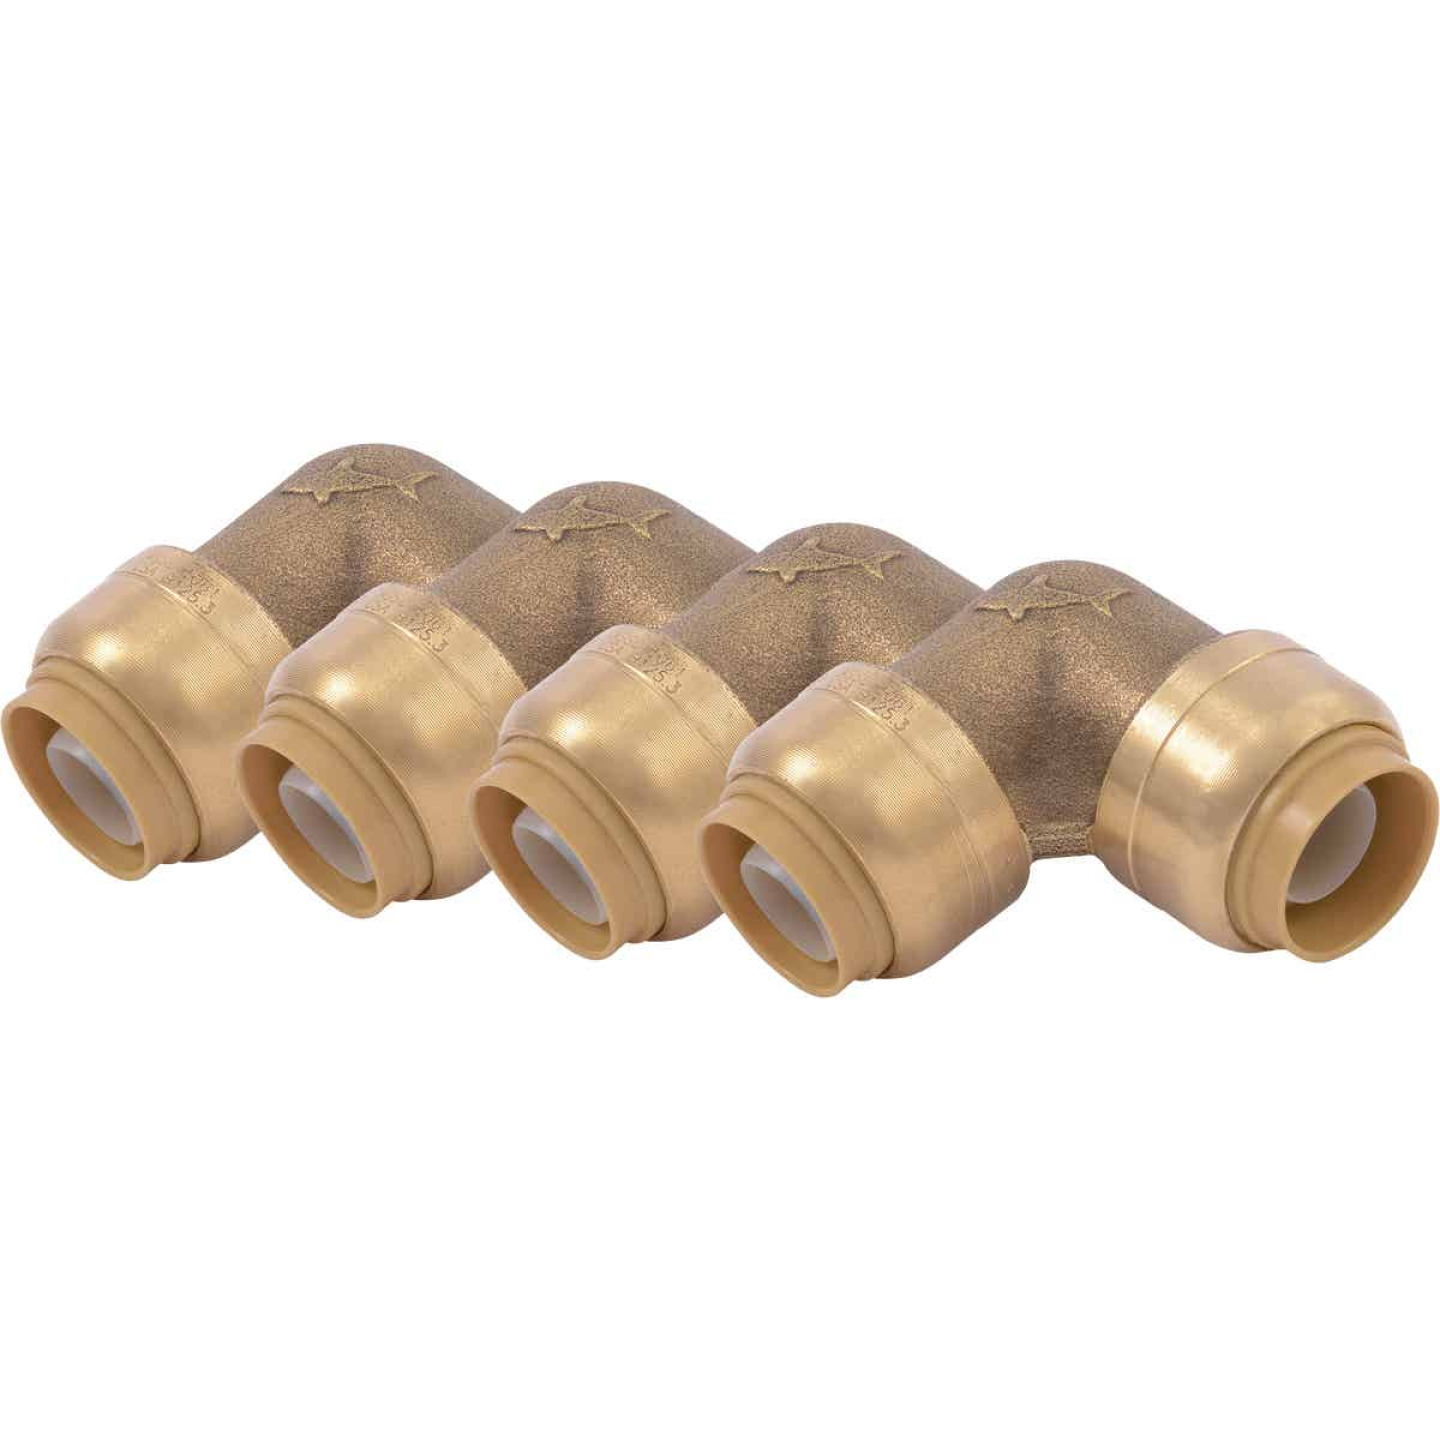 SharkBite 1/2 In. x 1/2 In. 90 Deg. Push-to-Connect Brass Elbow  (1/4 Bend) (4-Pack) Image 1